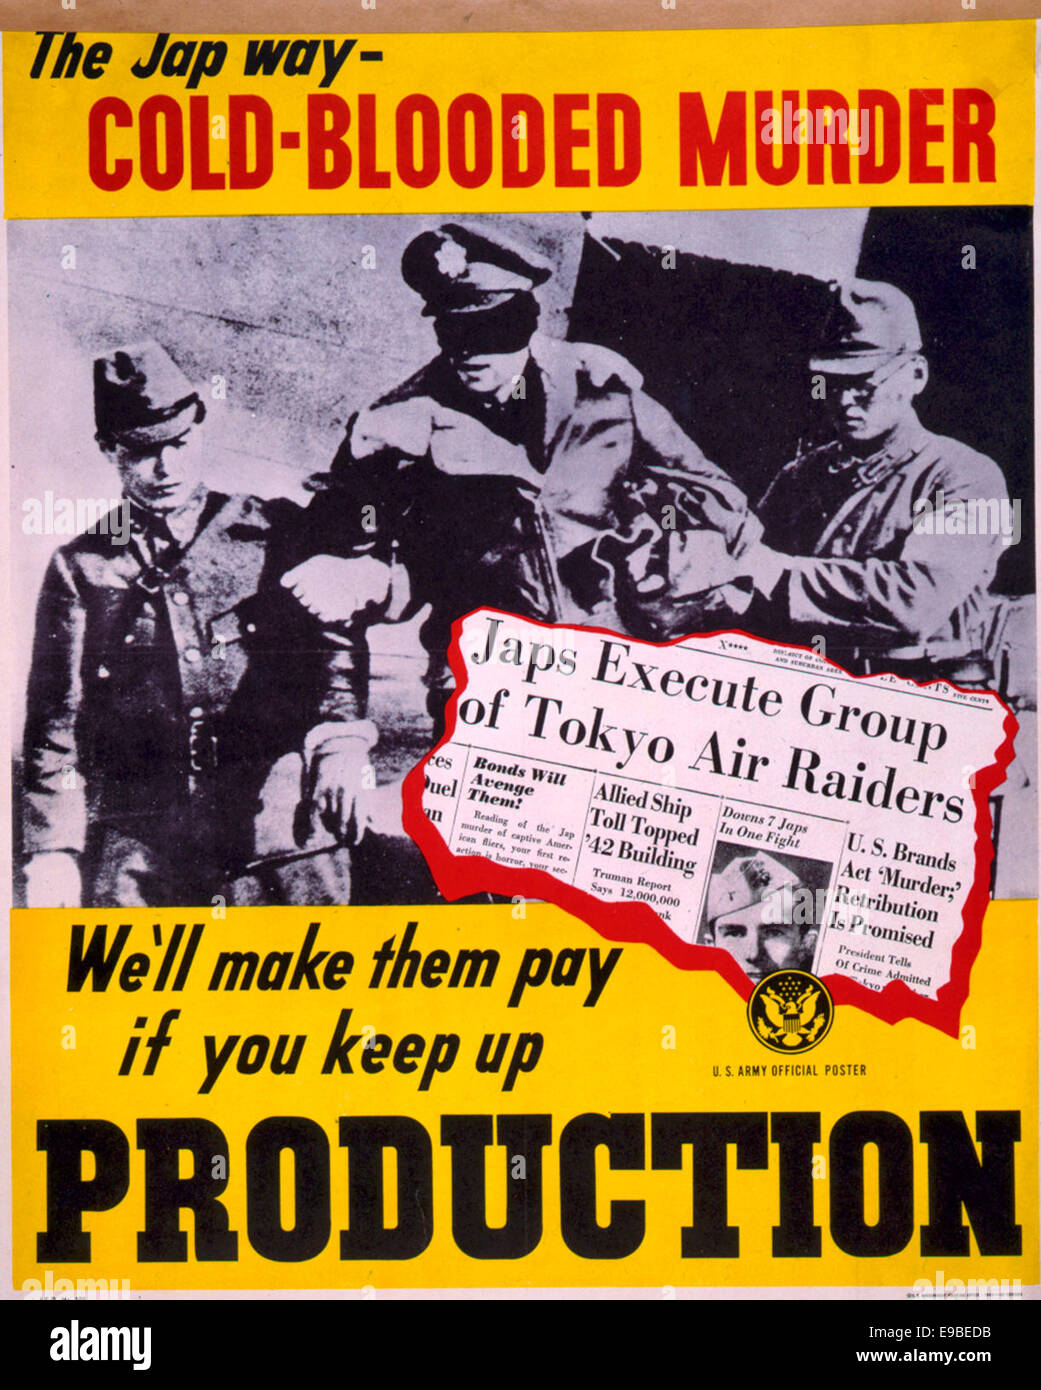 The Jap Way - Cold Blooded Murder - We'll Make them pay if you keep up production - WWII poster showing execution - Stock Image